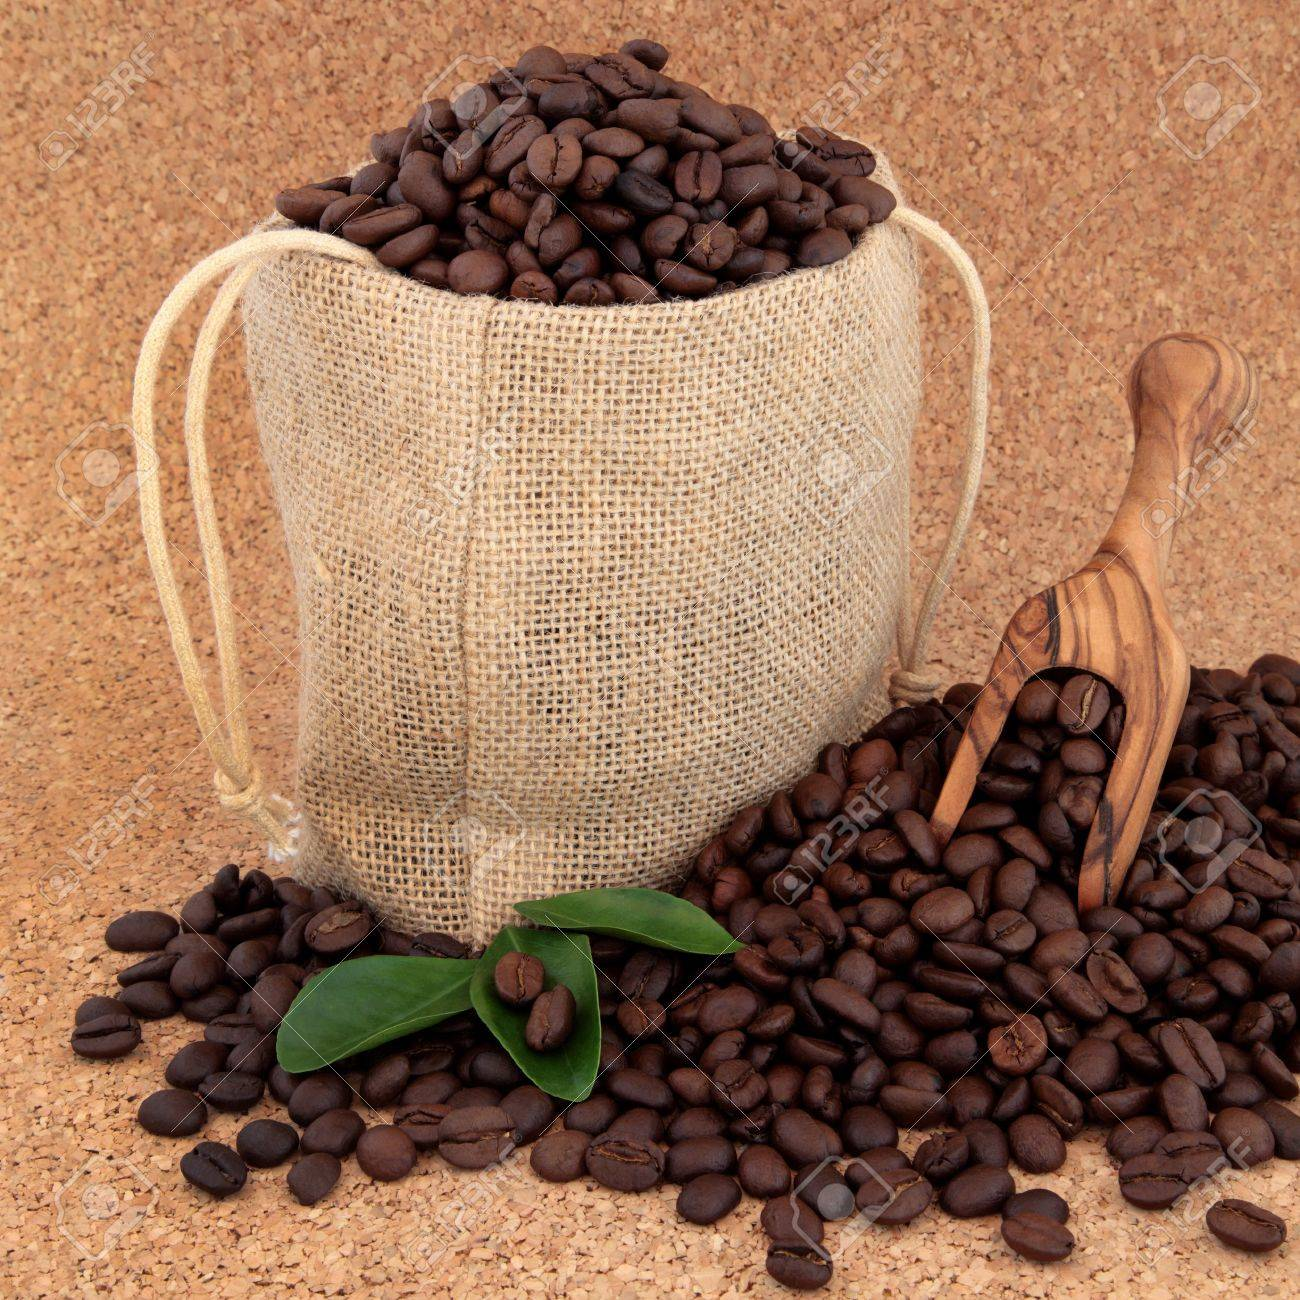 Coffee beans in a burlap sack with olive wood scoop and leaf sprigs over cork background Stock Photo - 18020124